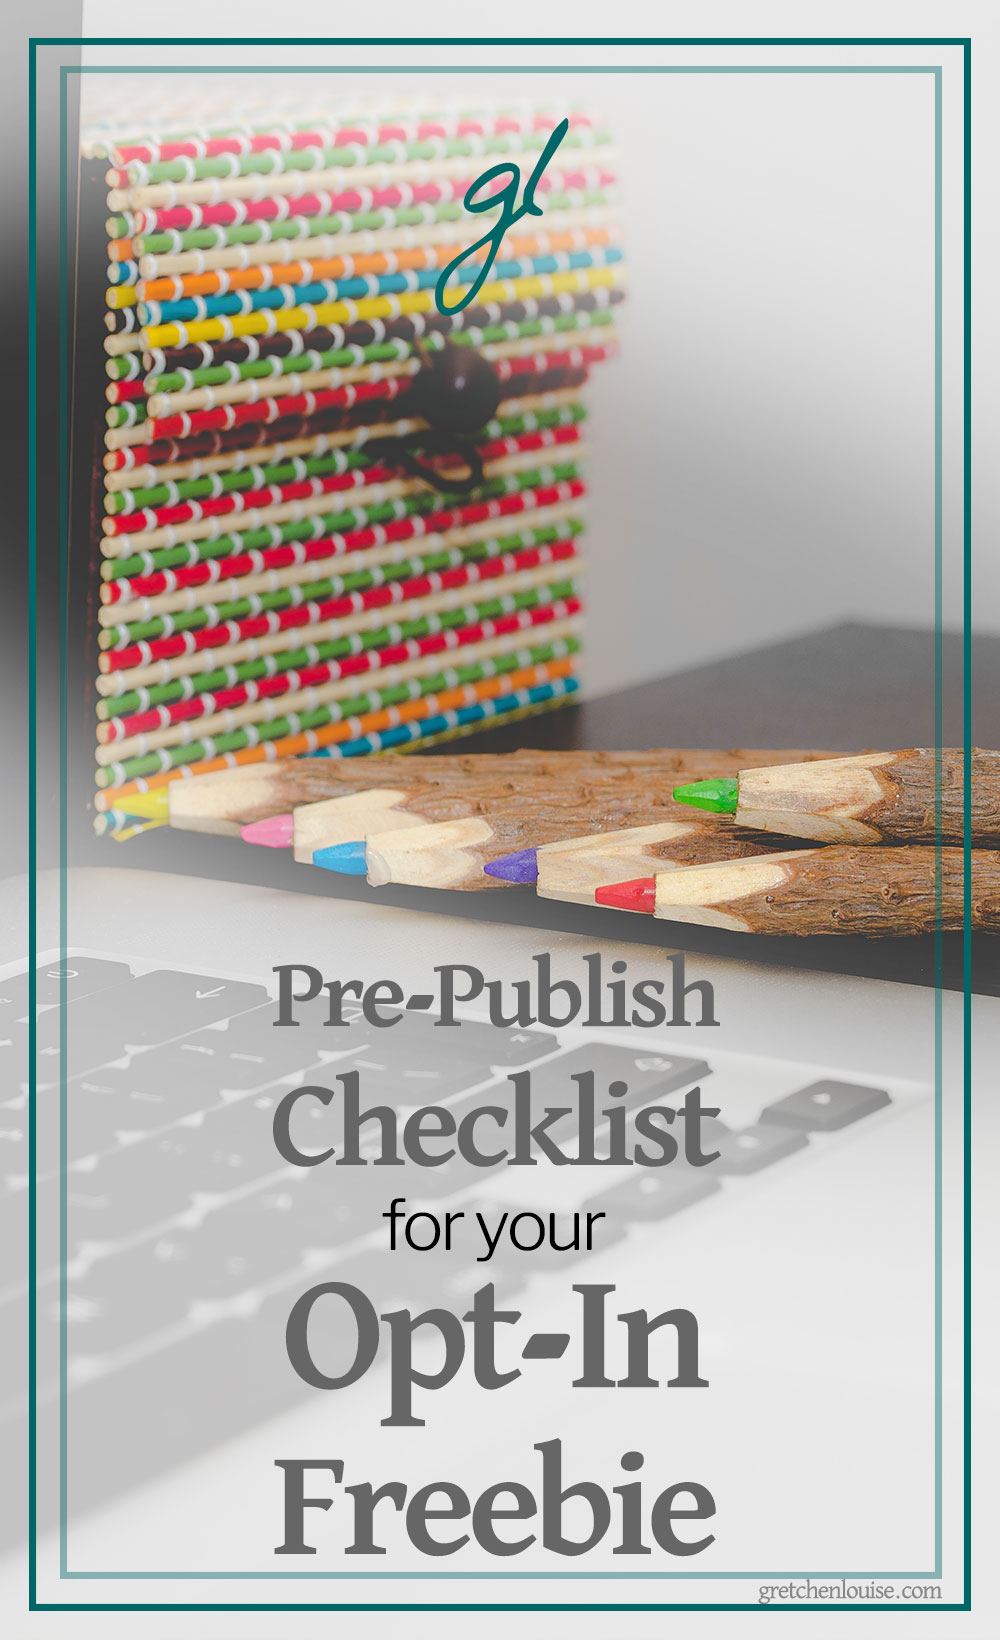 It's easy to get so excited about the brand new freebie you've created to bribe your visitors to subscribe to your email list that you forget a key element or two.